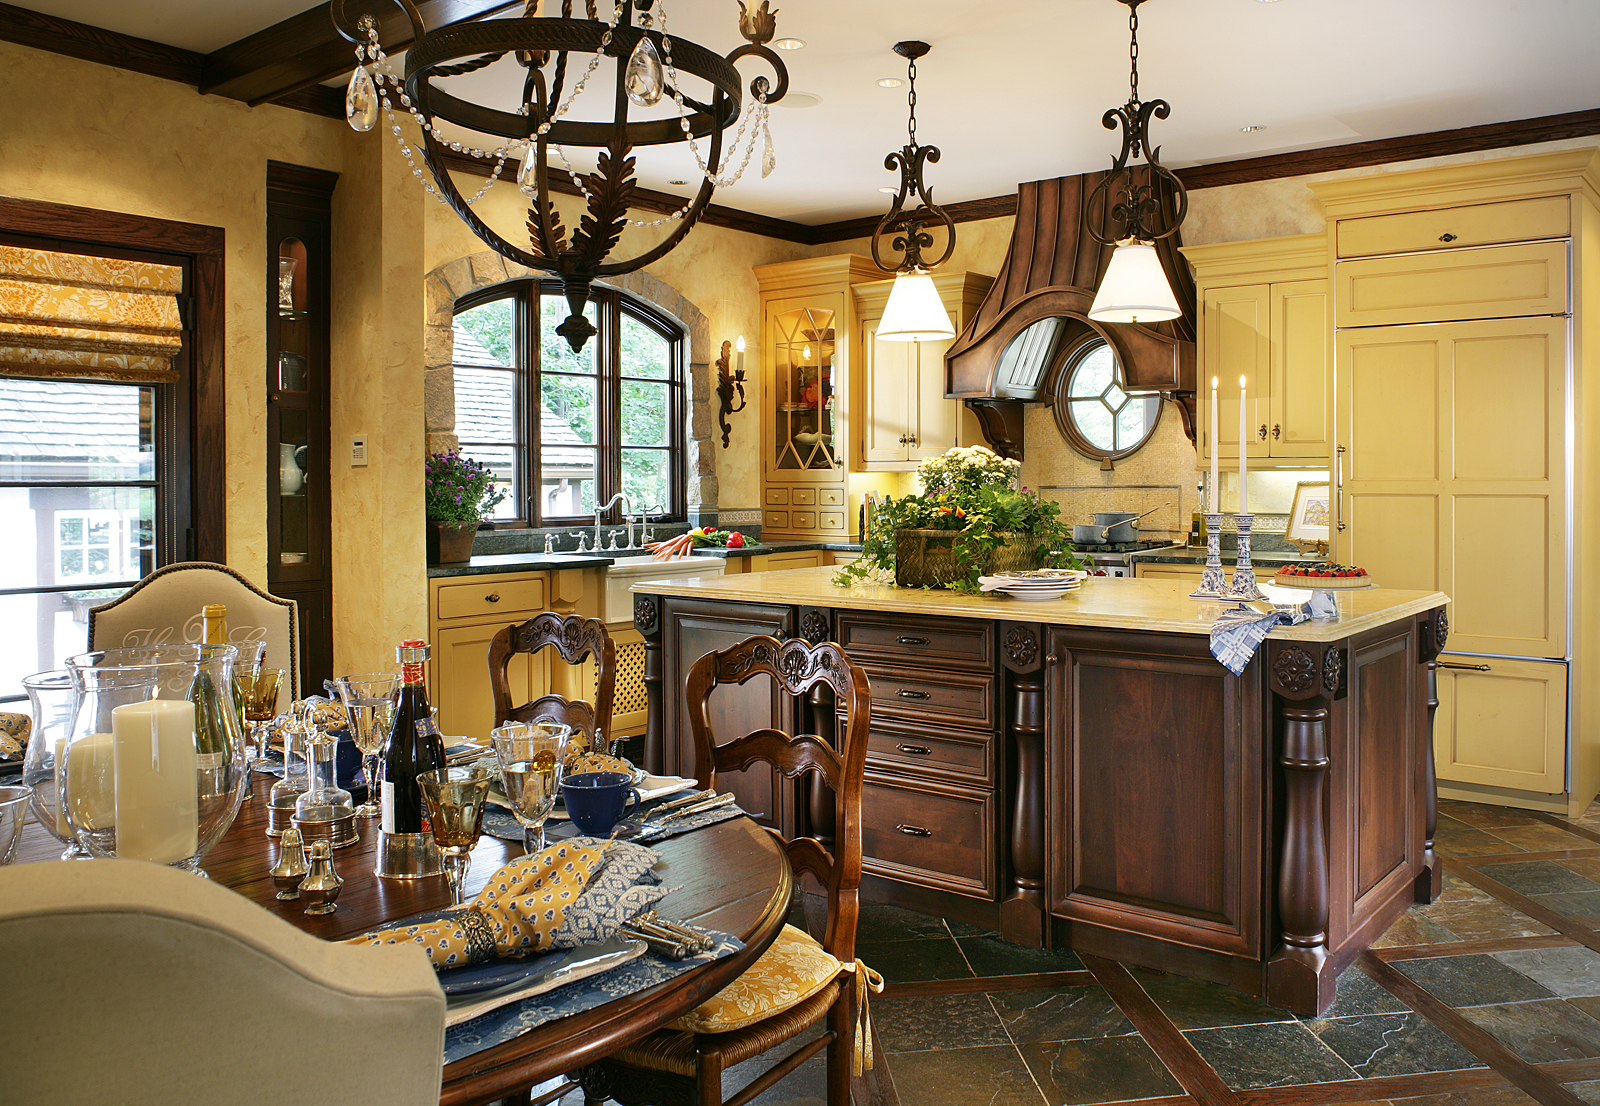 French country kitchen with timeless Old World ambiance, featuring mustard-colored cabinets, wrought iron light fixtures, limestone and soapstone counters, and slate and wood floor. By J. Stephens Interiors